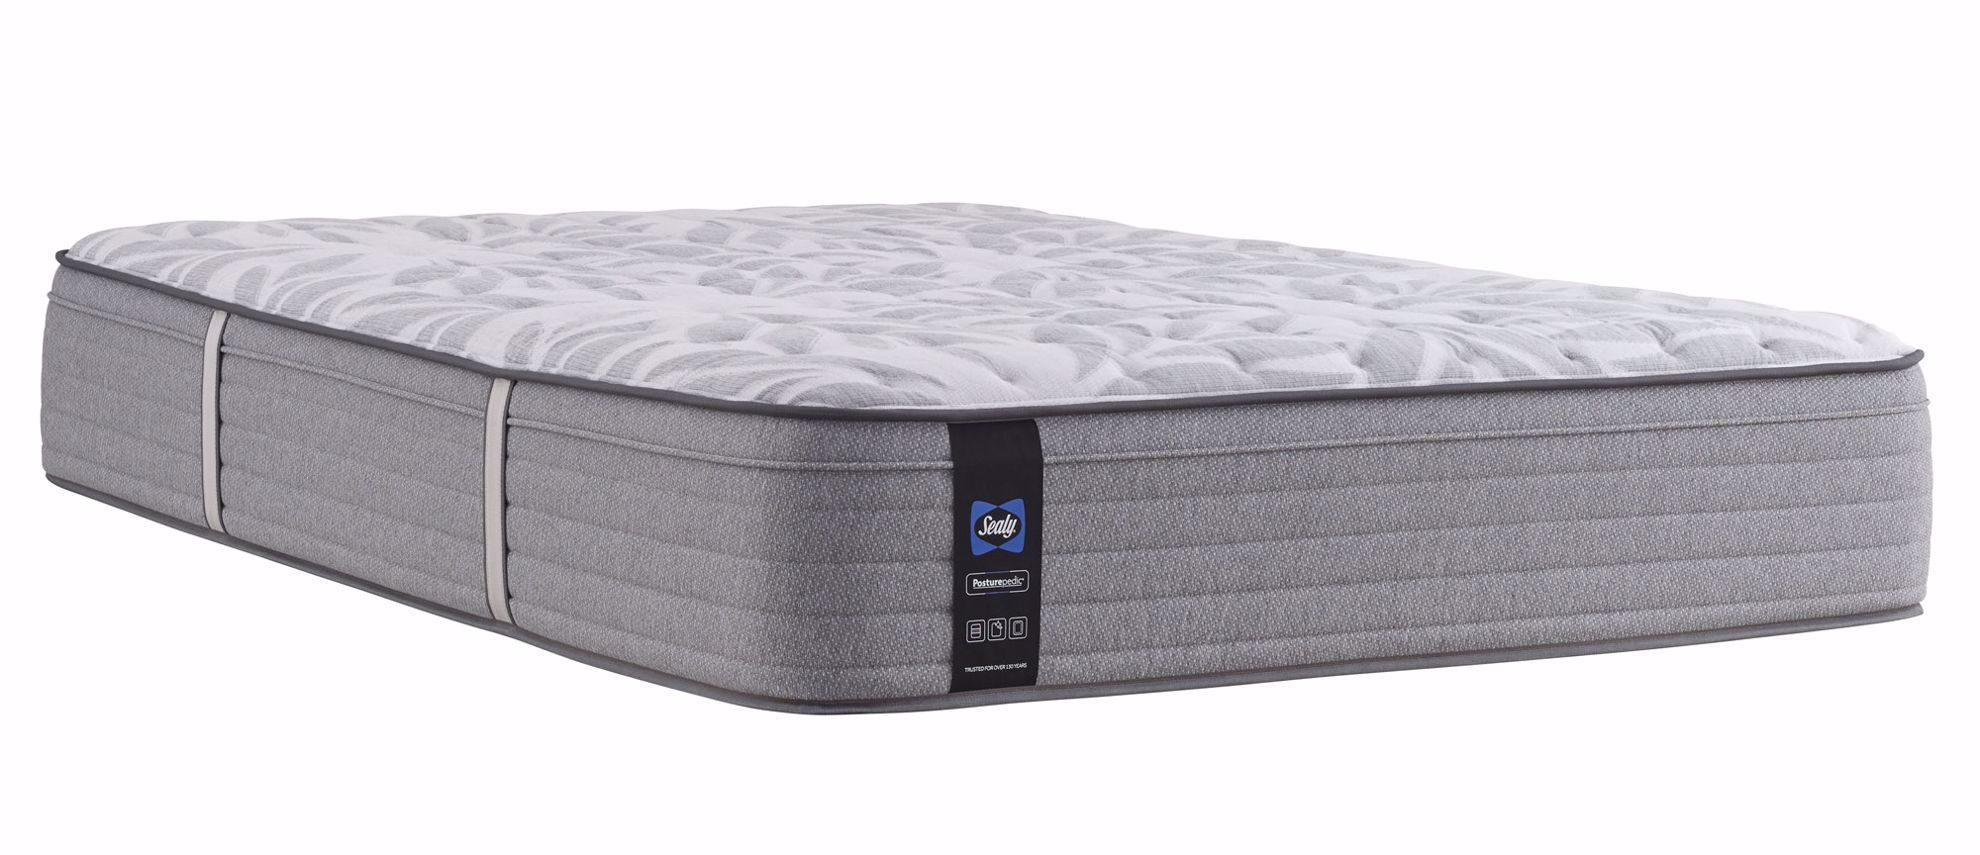 Picture of Posturpedic Silver Pine Soft Faux Euro Pillowtop Queen Mattress